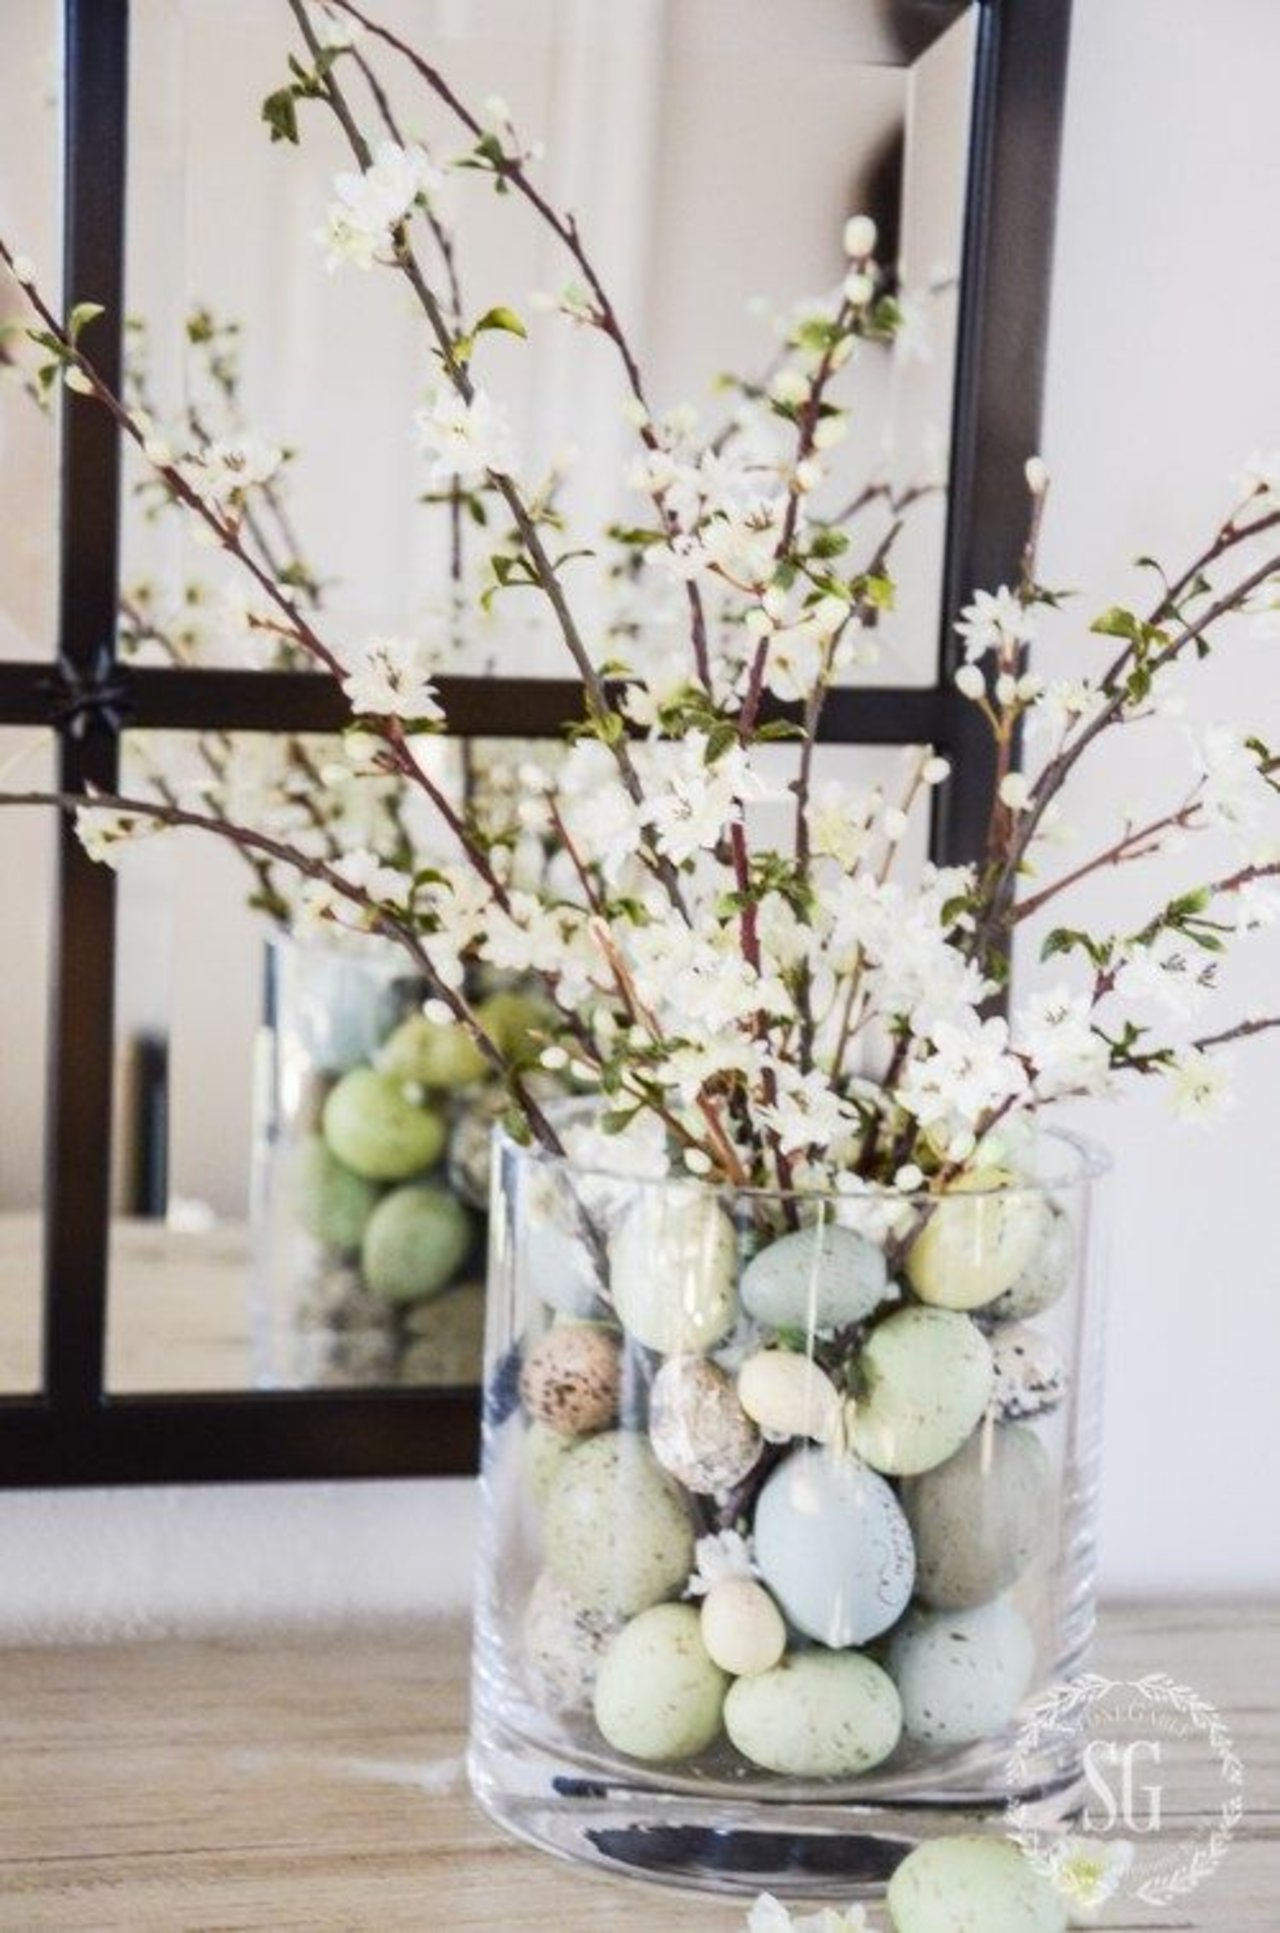 8 Bunny Free Easter Tablescapes The Accent